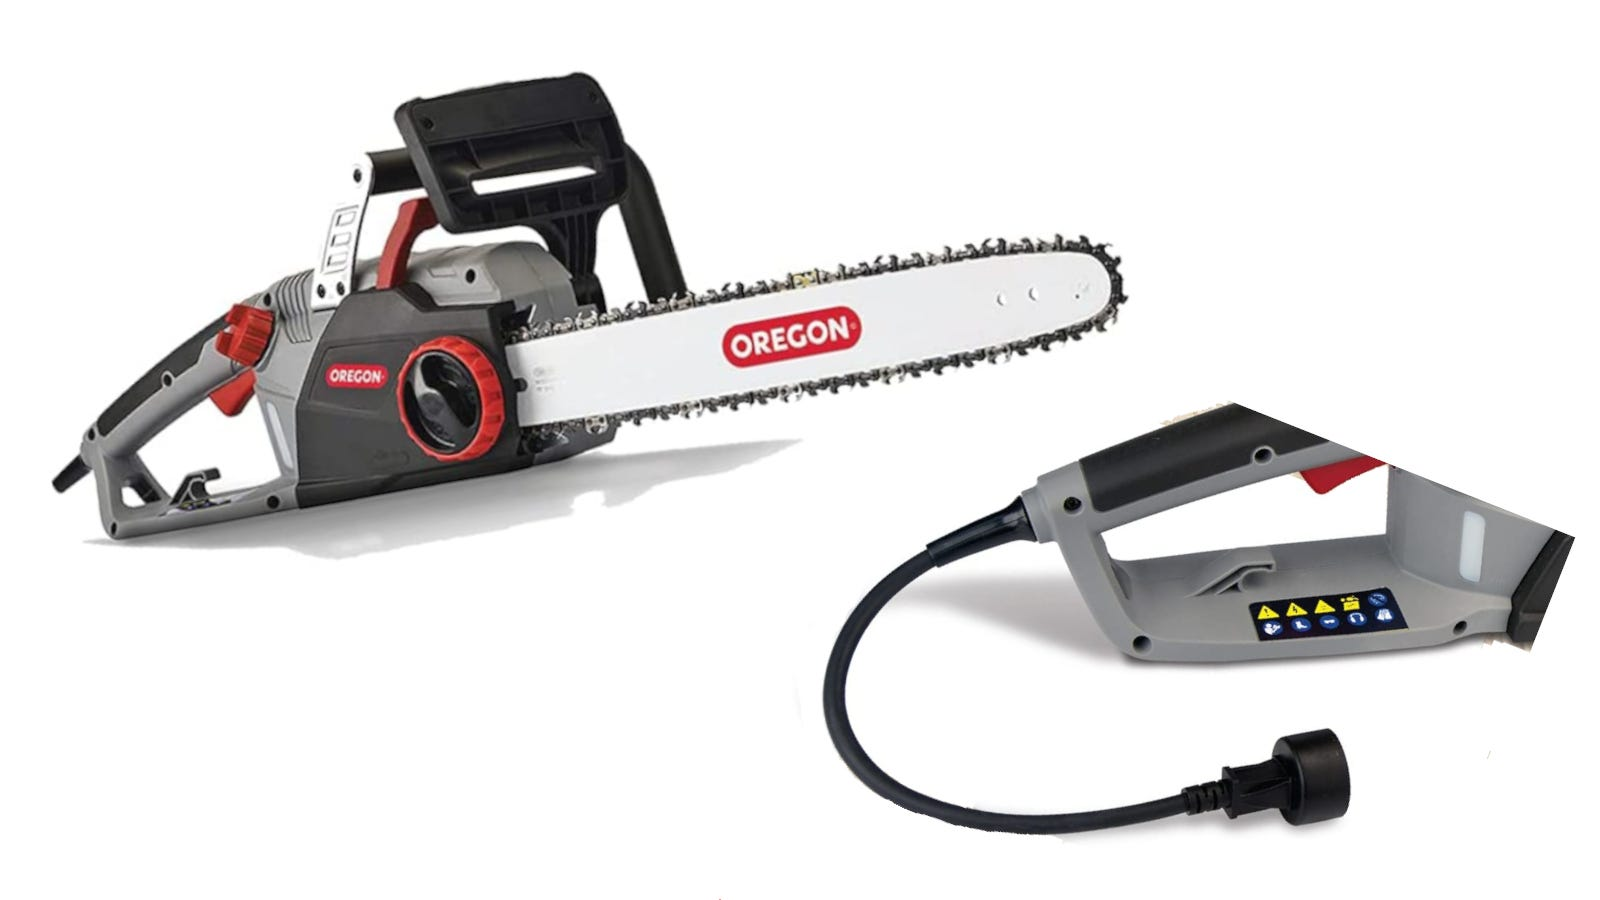 Gray and red 15-amp self-sharpening corded chainsaw with 18 inch bar